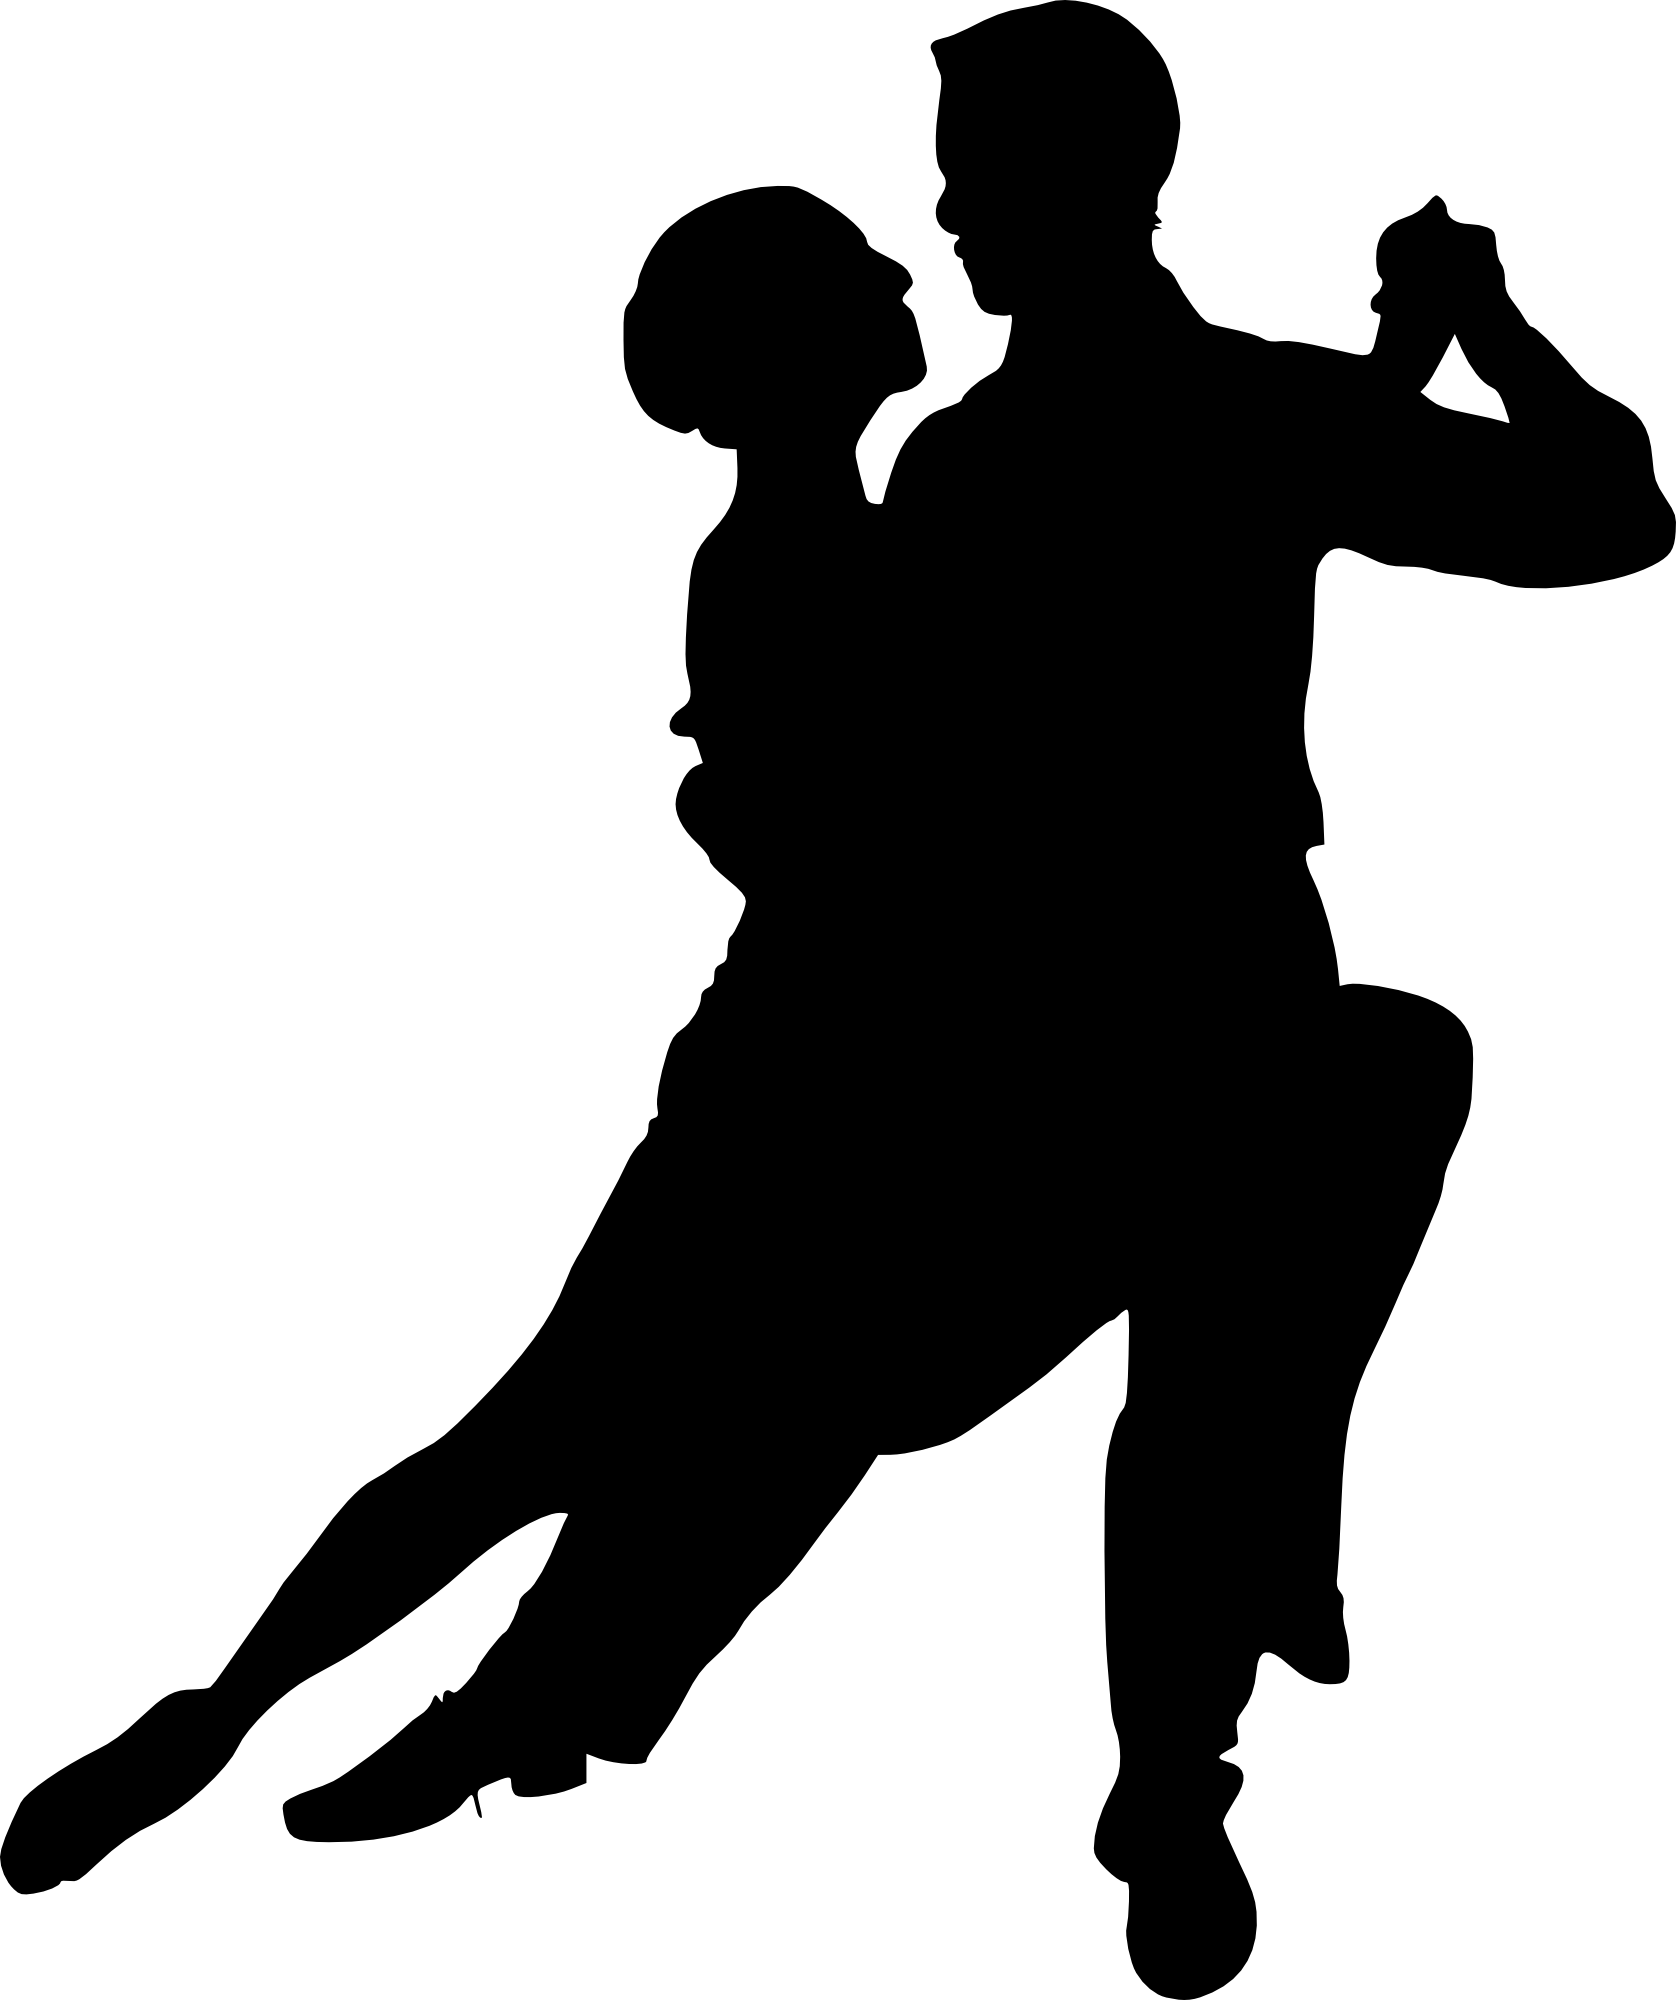 Silhouette dance at getdrawings. Waitress clipart mesero